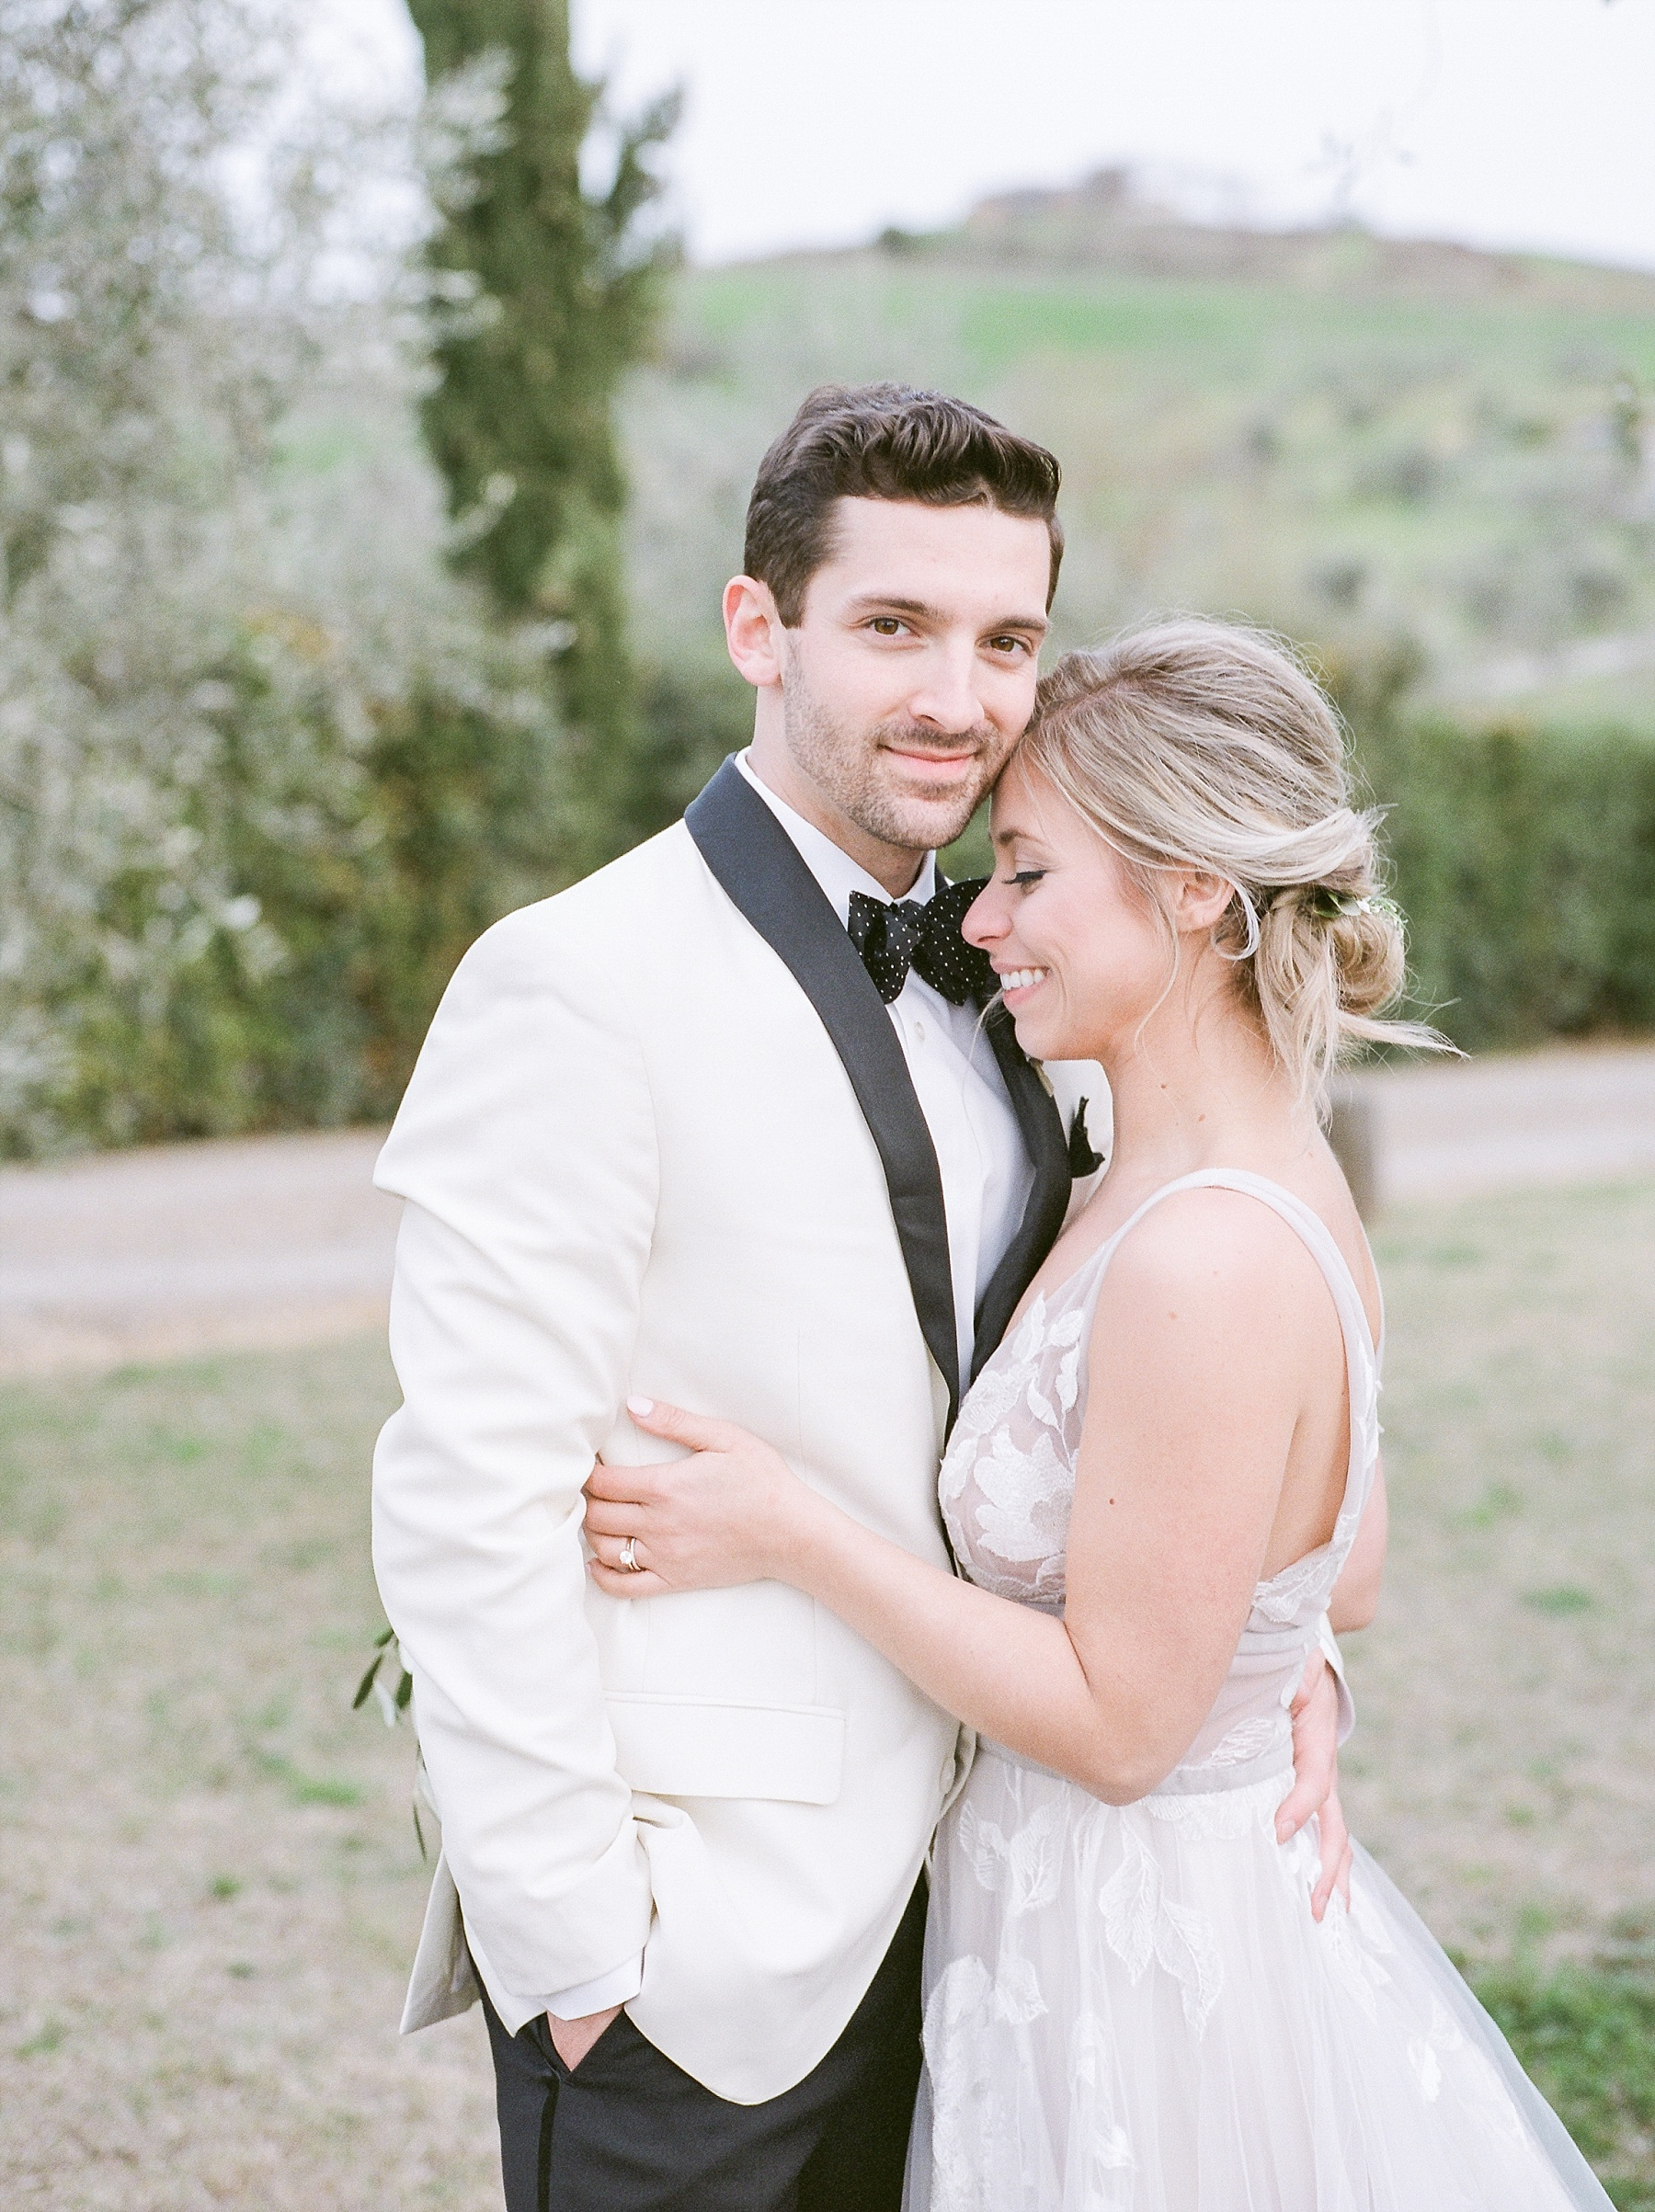 All White Destination Wedding in the Hills of Tuscany Italy at Estate Borgo Petrognano by Kelsi Kliethermes Photography_0062.jpg